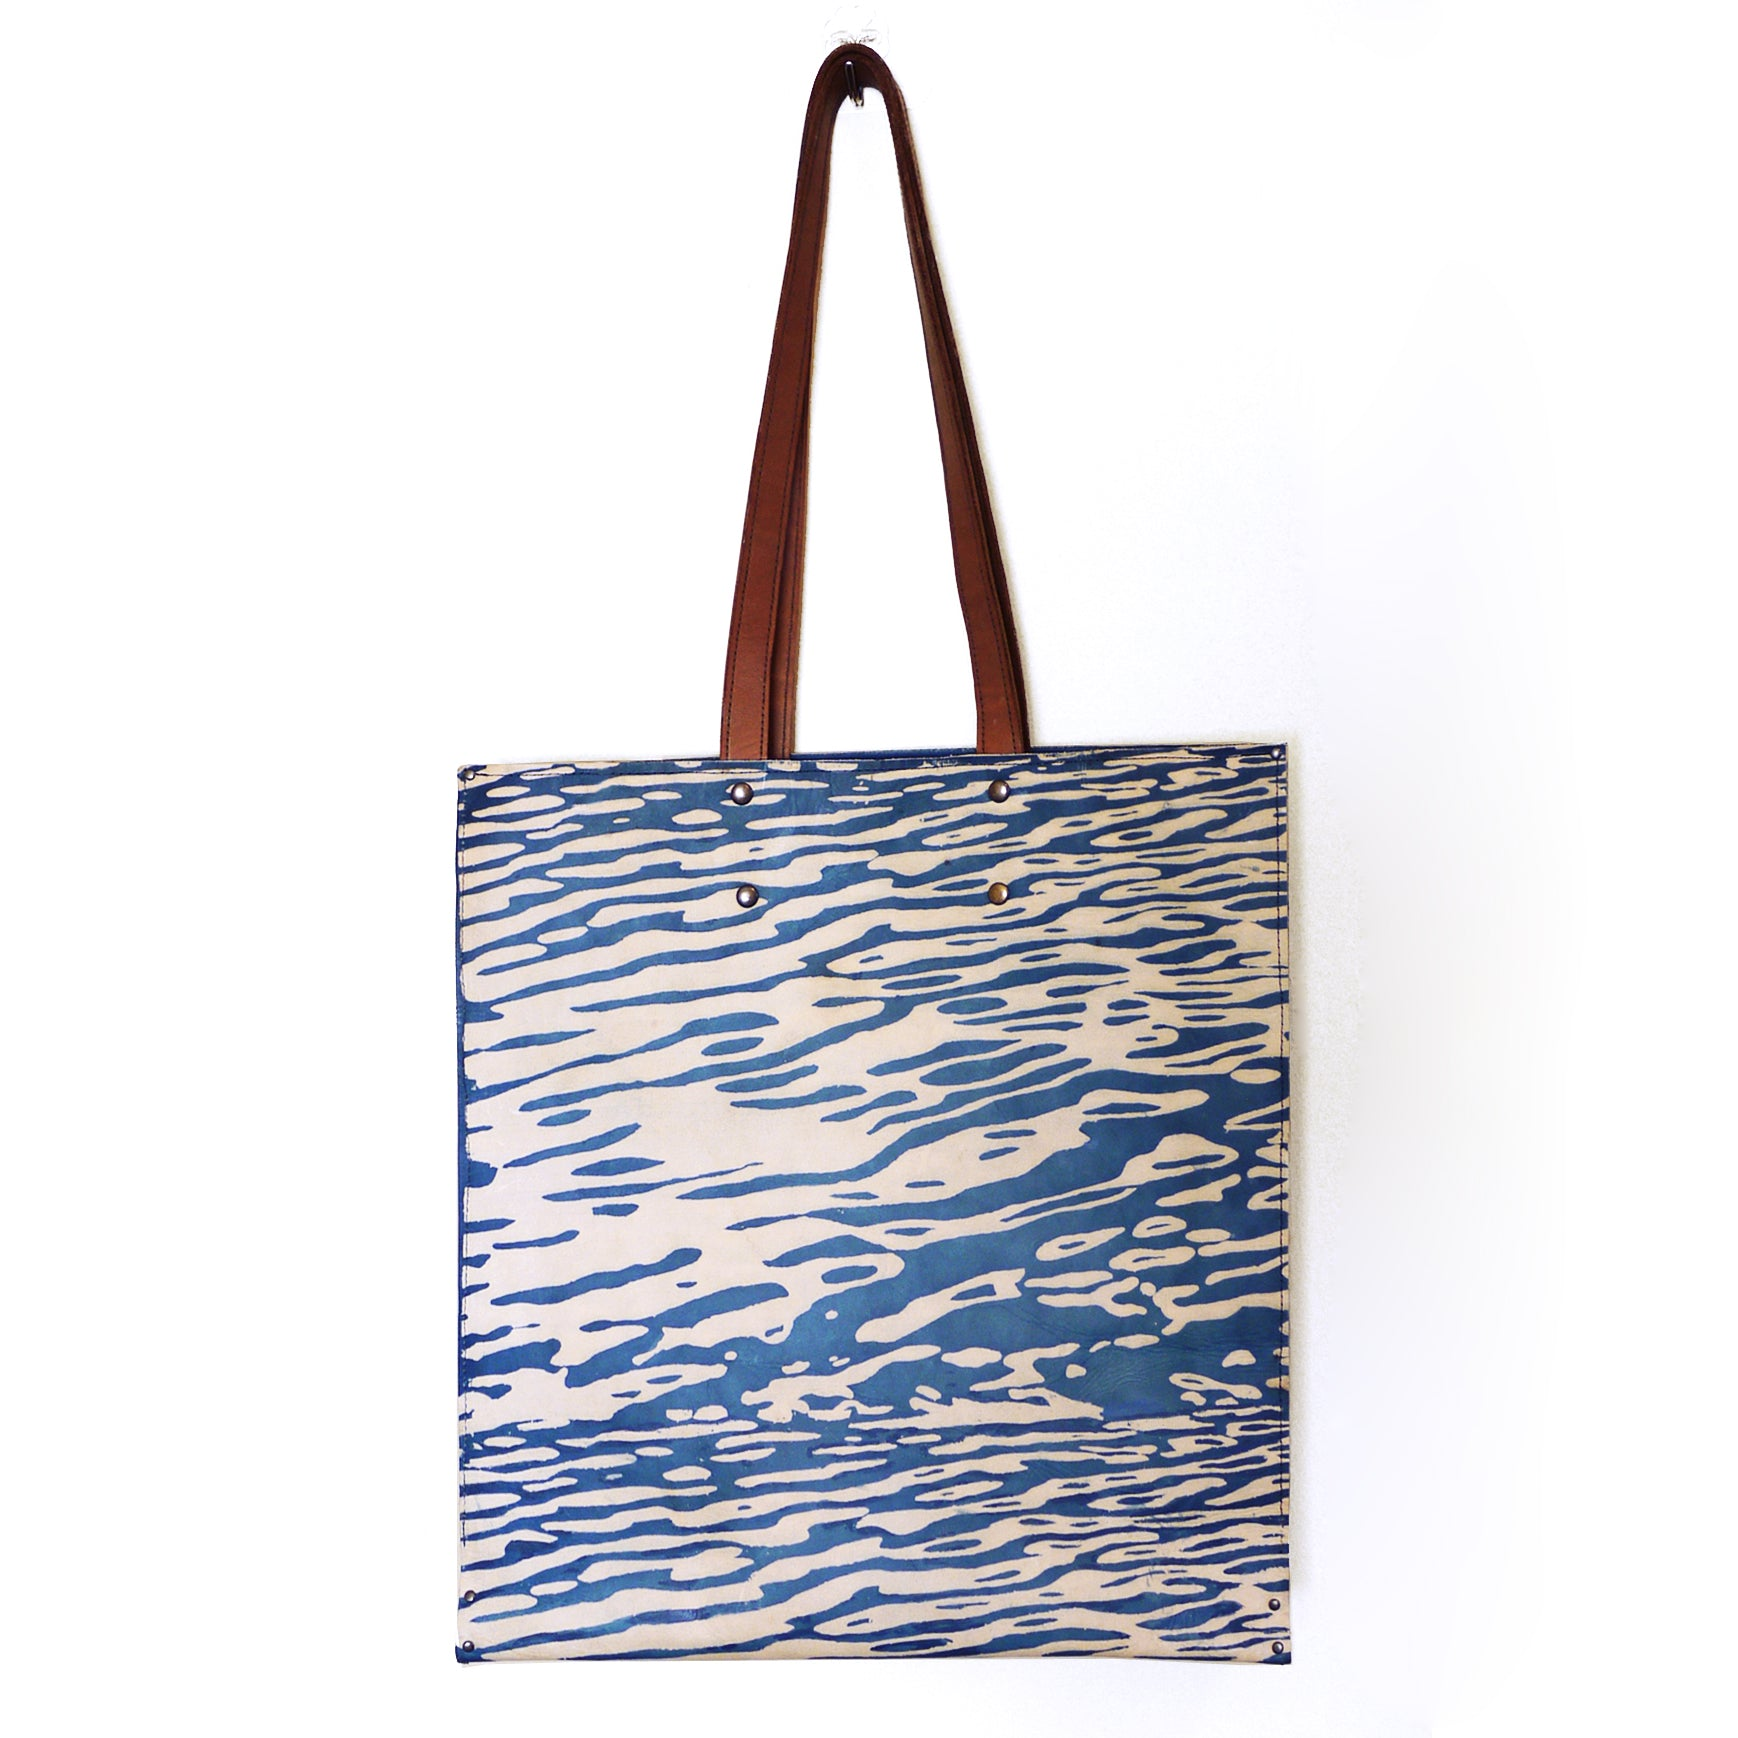 WATER 01 indigo leather tote bag, made to order.